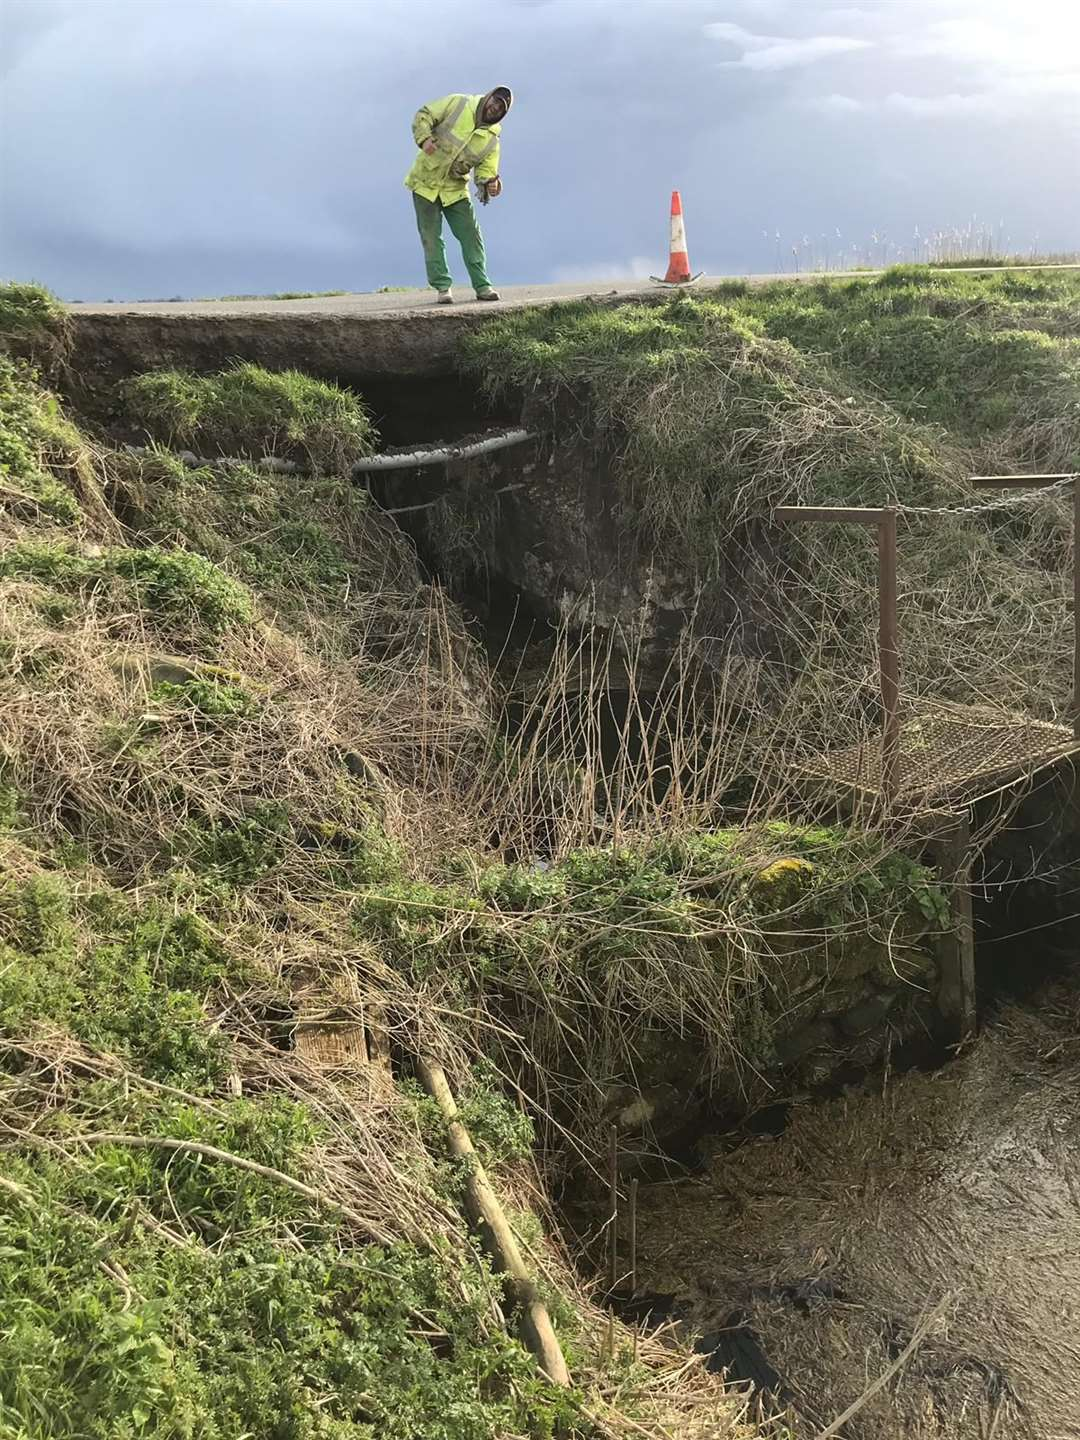 Farthing Drove in Sedge Fen will be closed for 45 weeks after a culvert collapsed. (30598343)